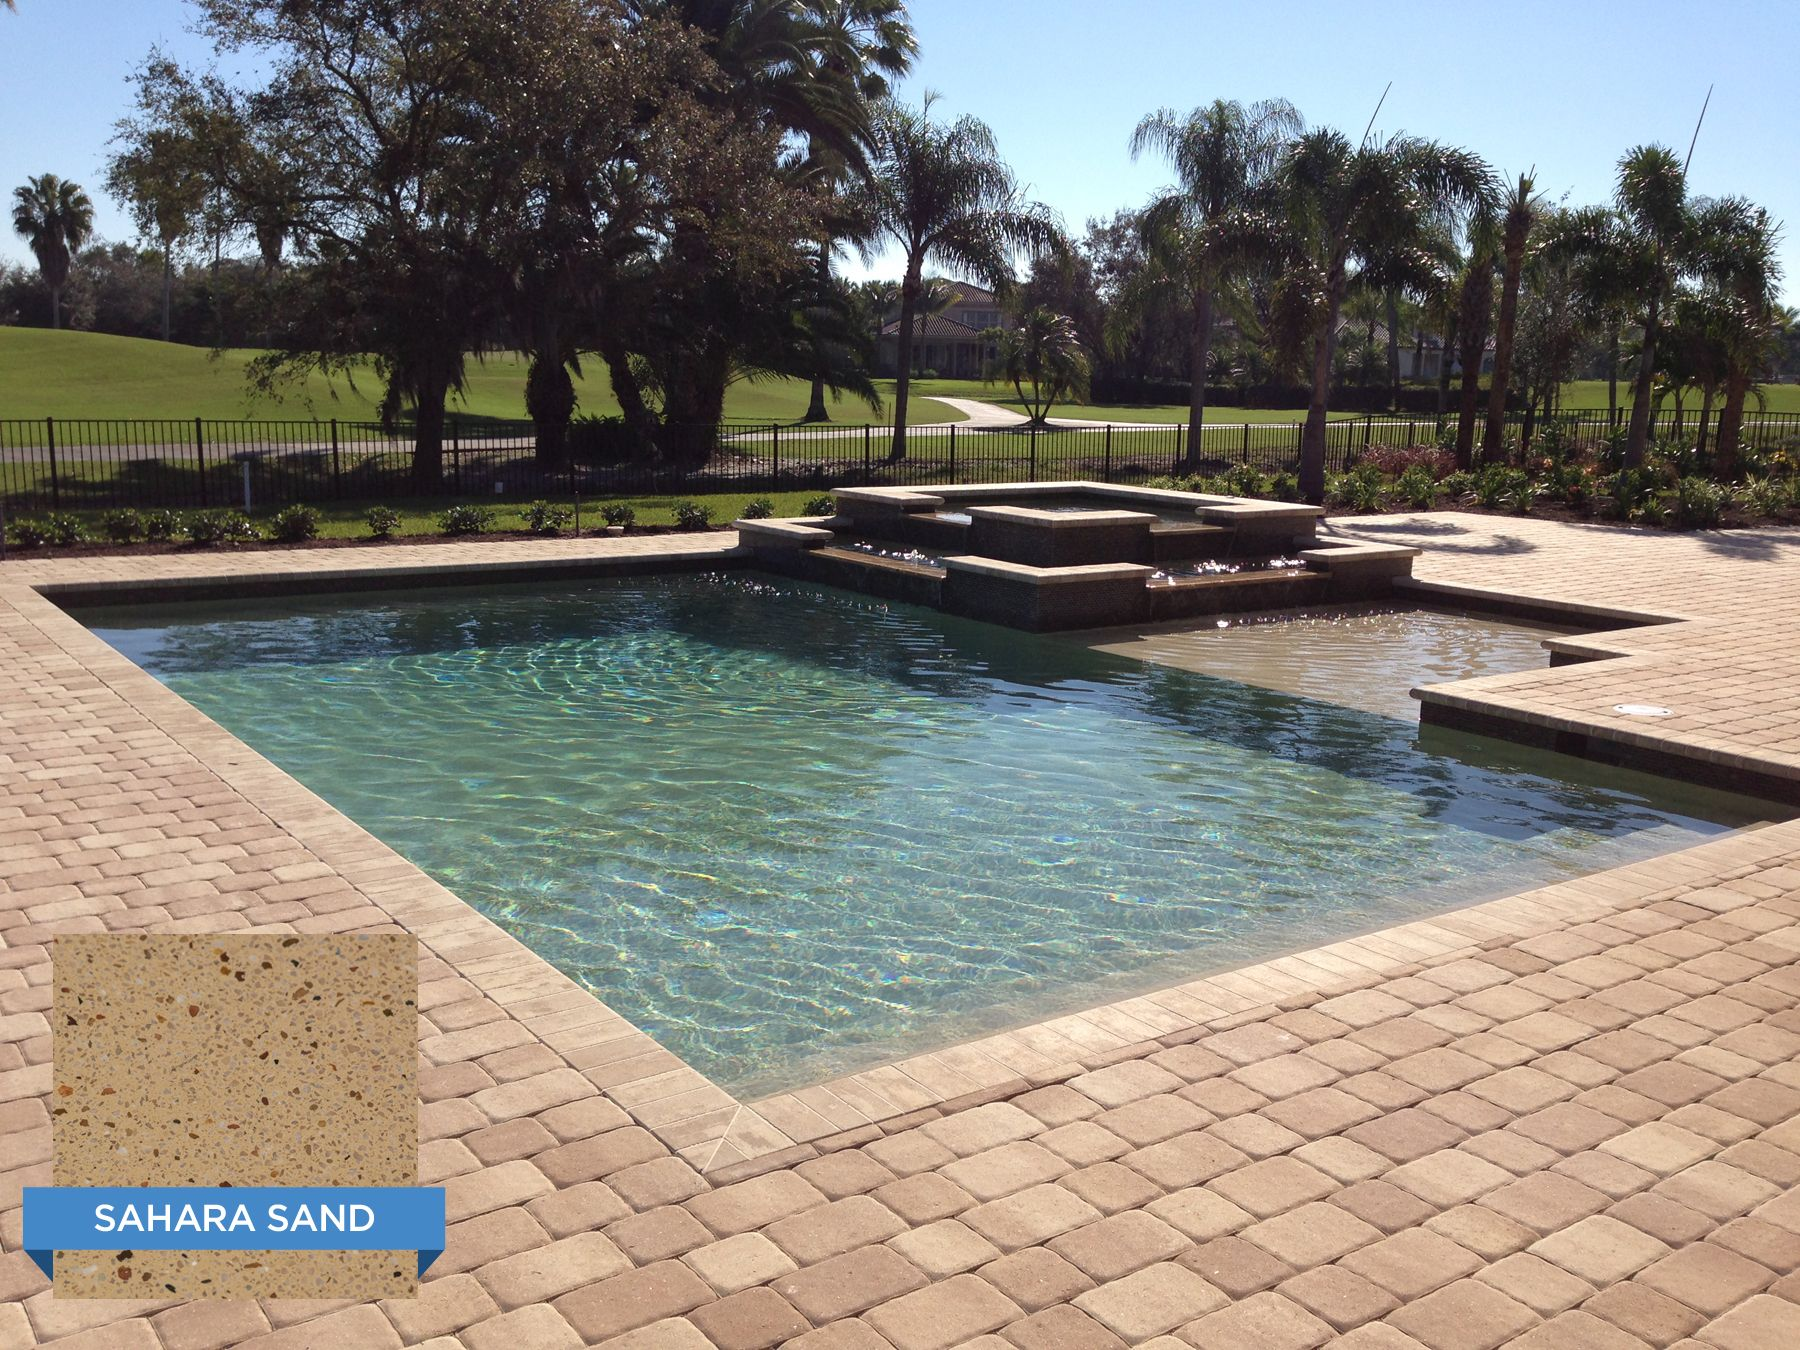 hydrazzo sahara sand turns a day into an enjoyable day by your